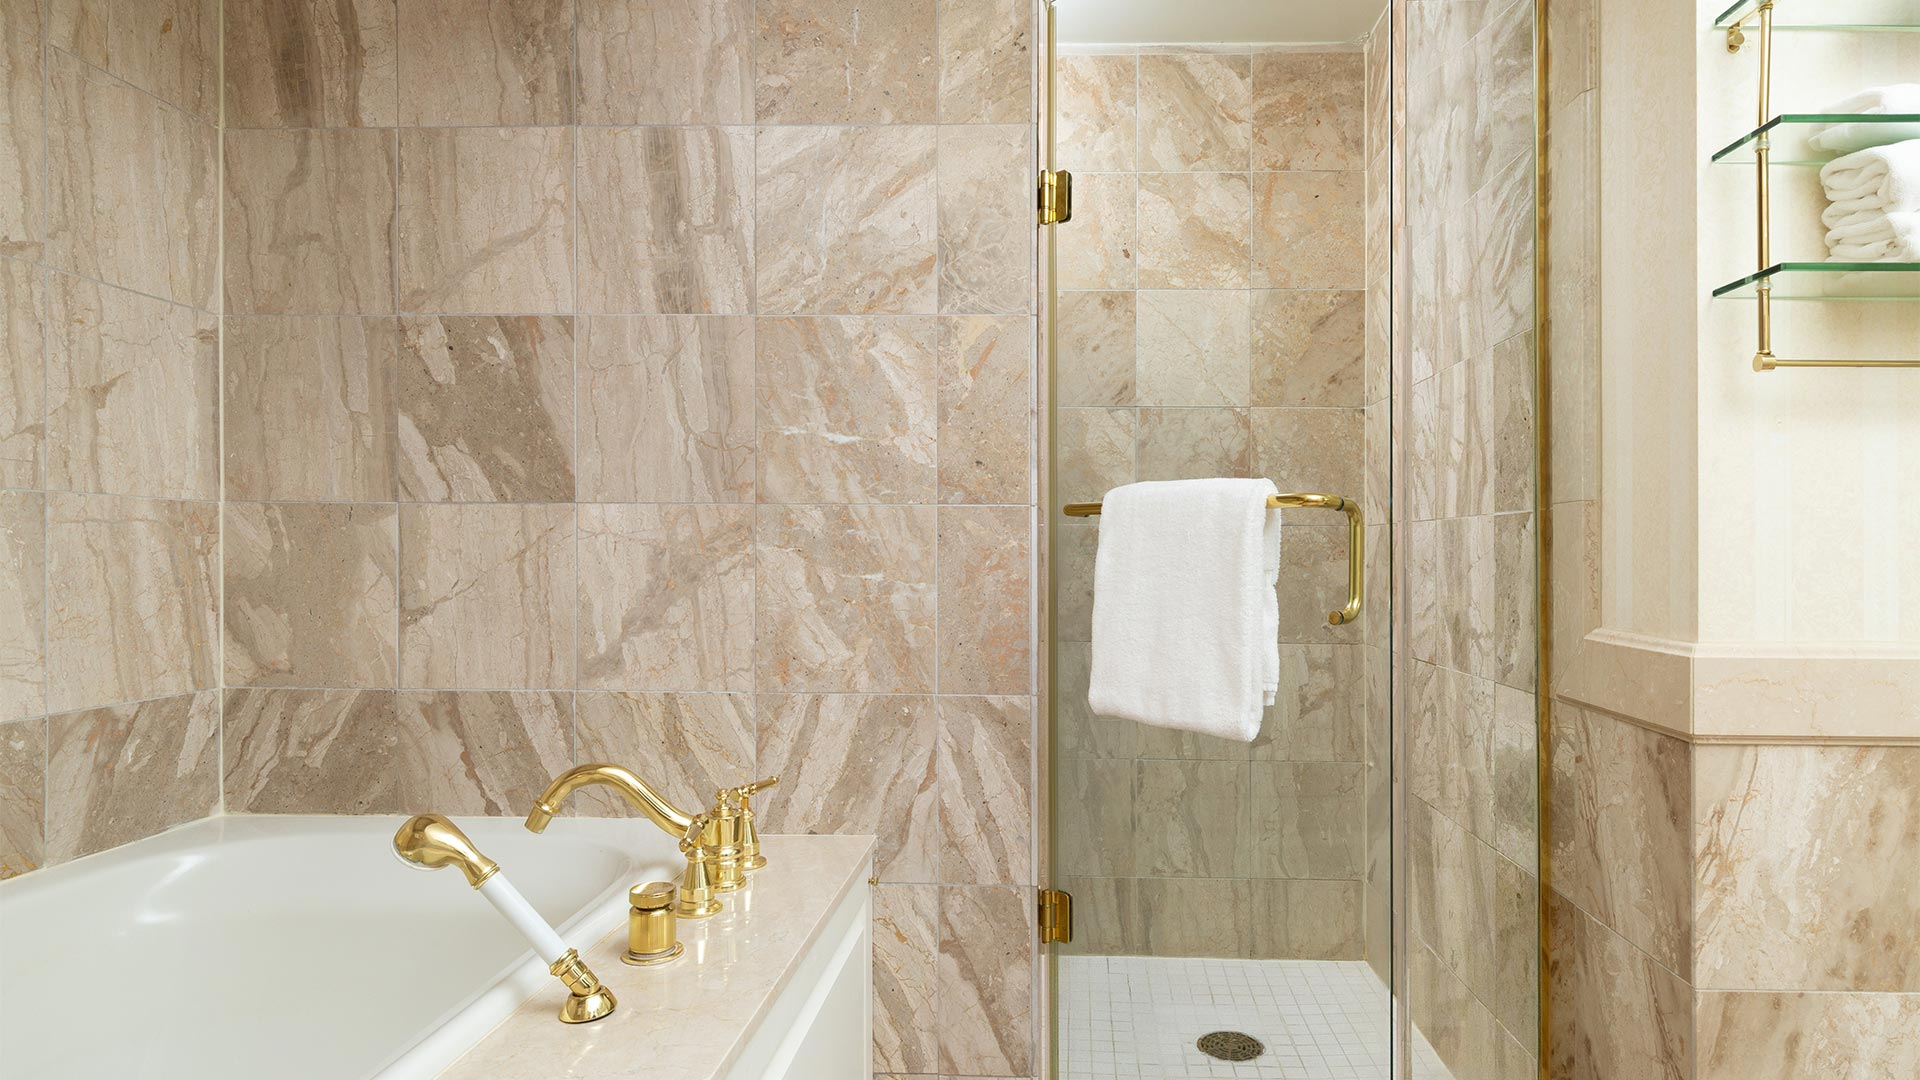 detail shot of the bathroom. The tiling is a neutral beige and the whirlpool bathtub is white with gold hardware. There is also a small shower next to the bathtub.